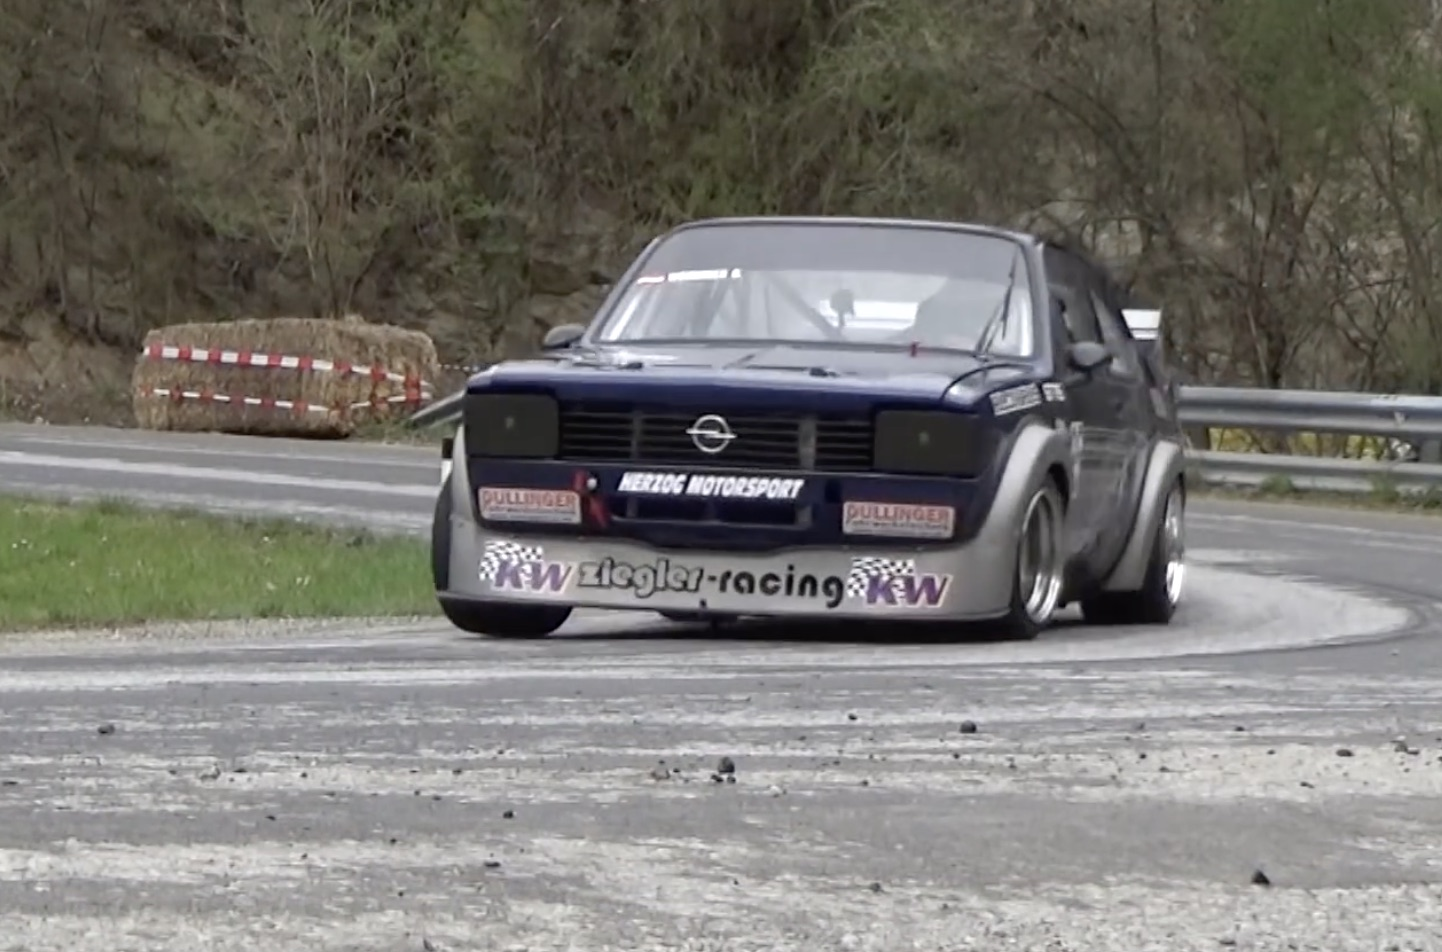 Morning Symphony: Hillclimbing In An Opel Kadett